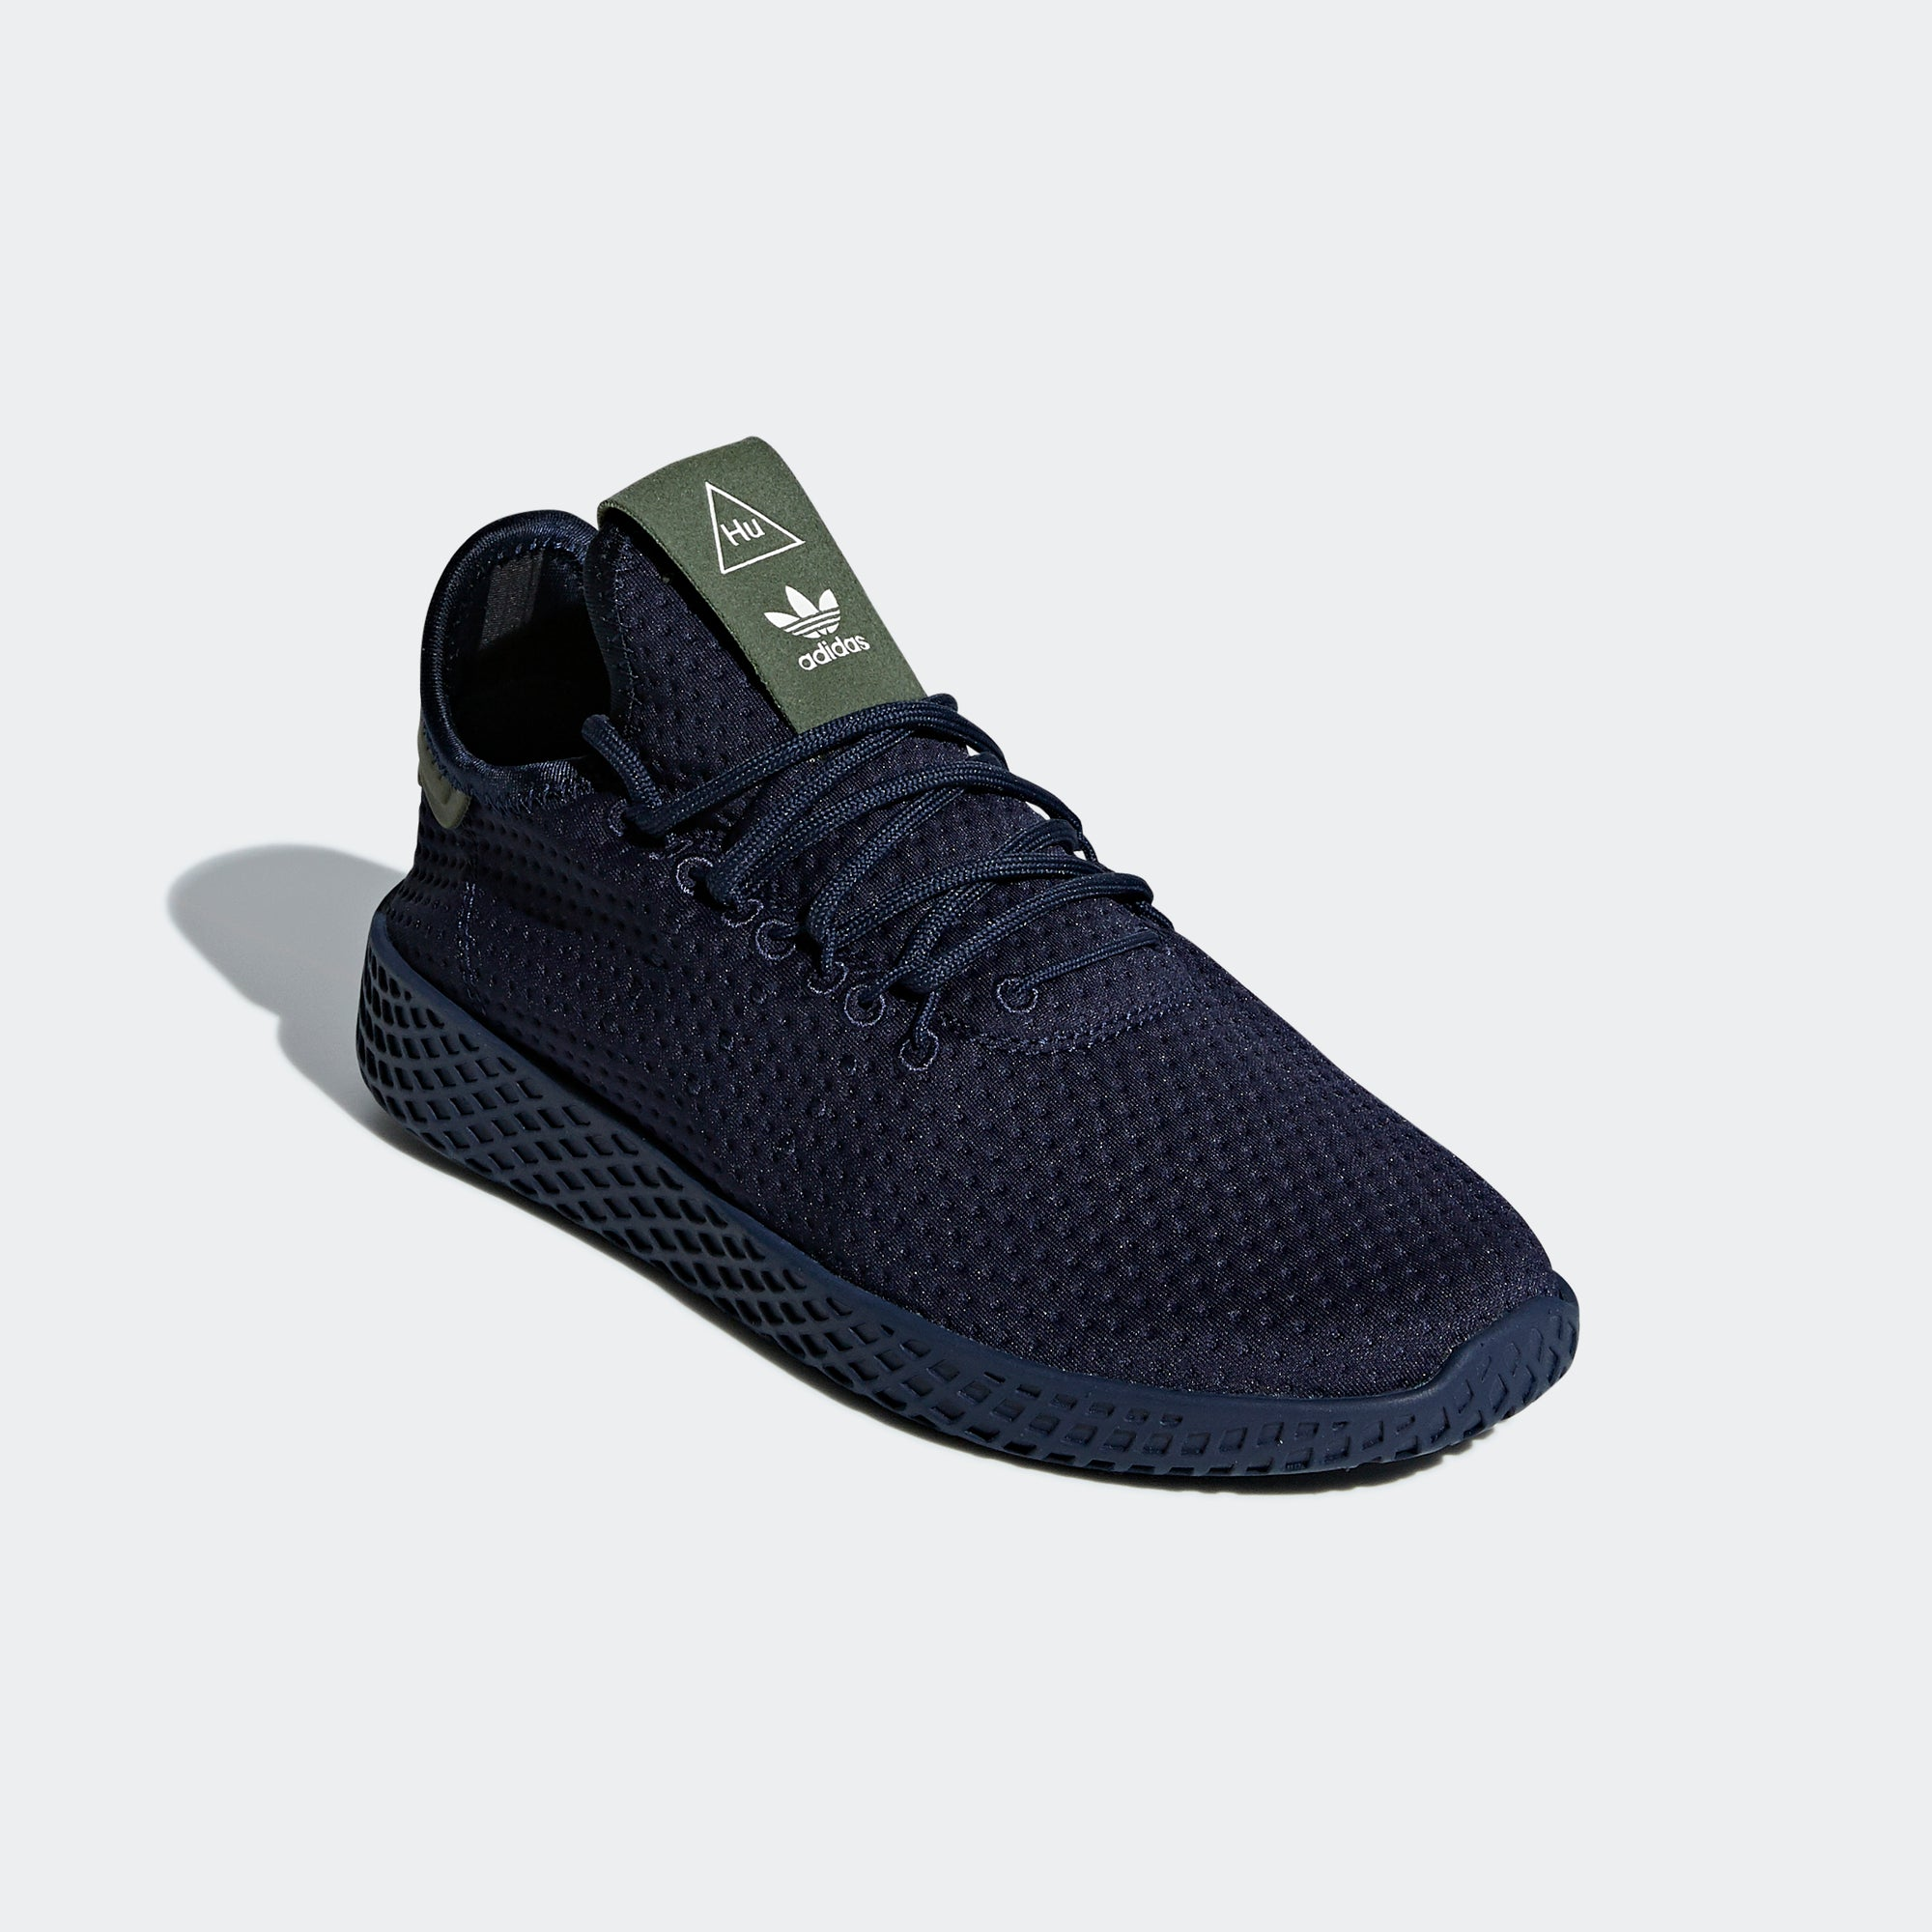 adidas Pharrell Williams Tennis Hu Kinder Sneaker Navy